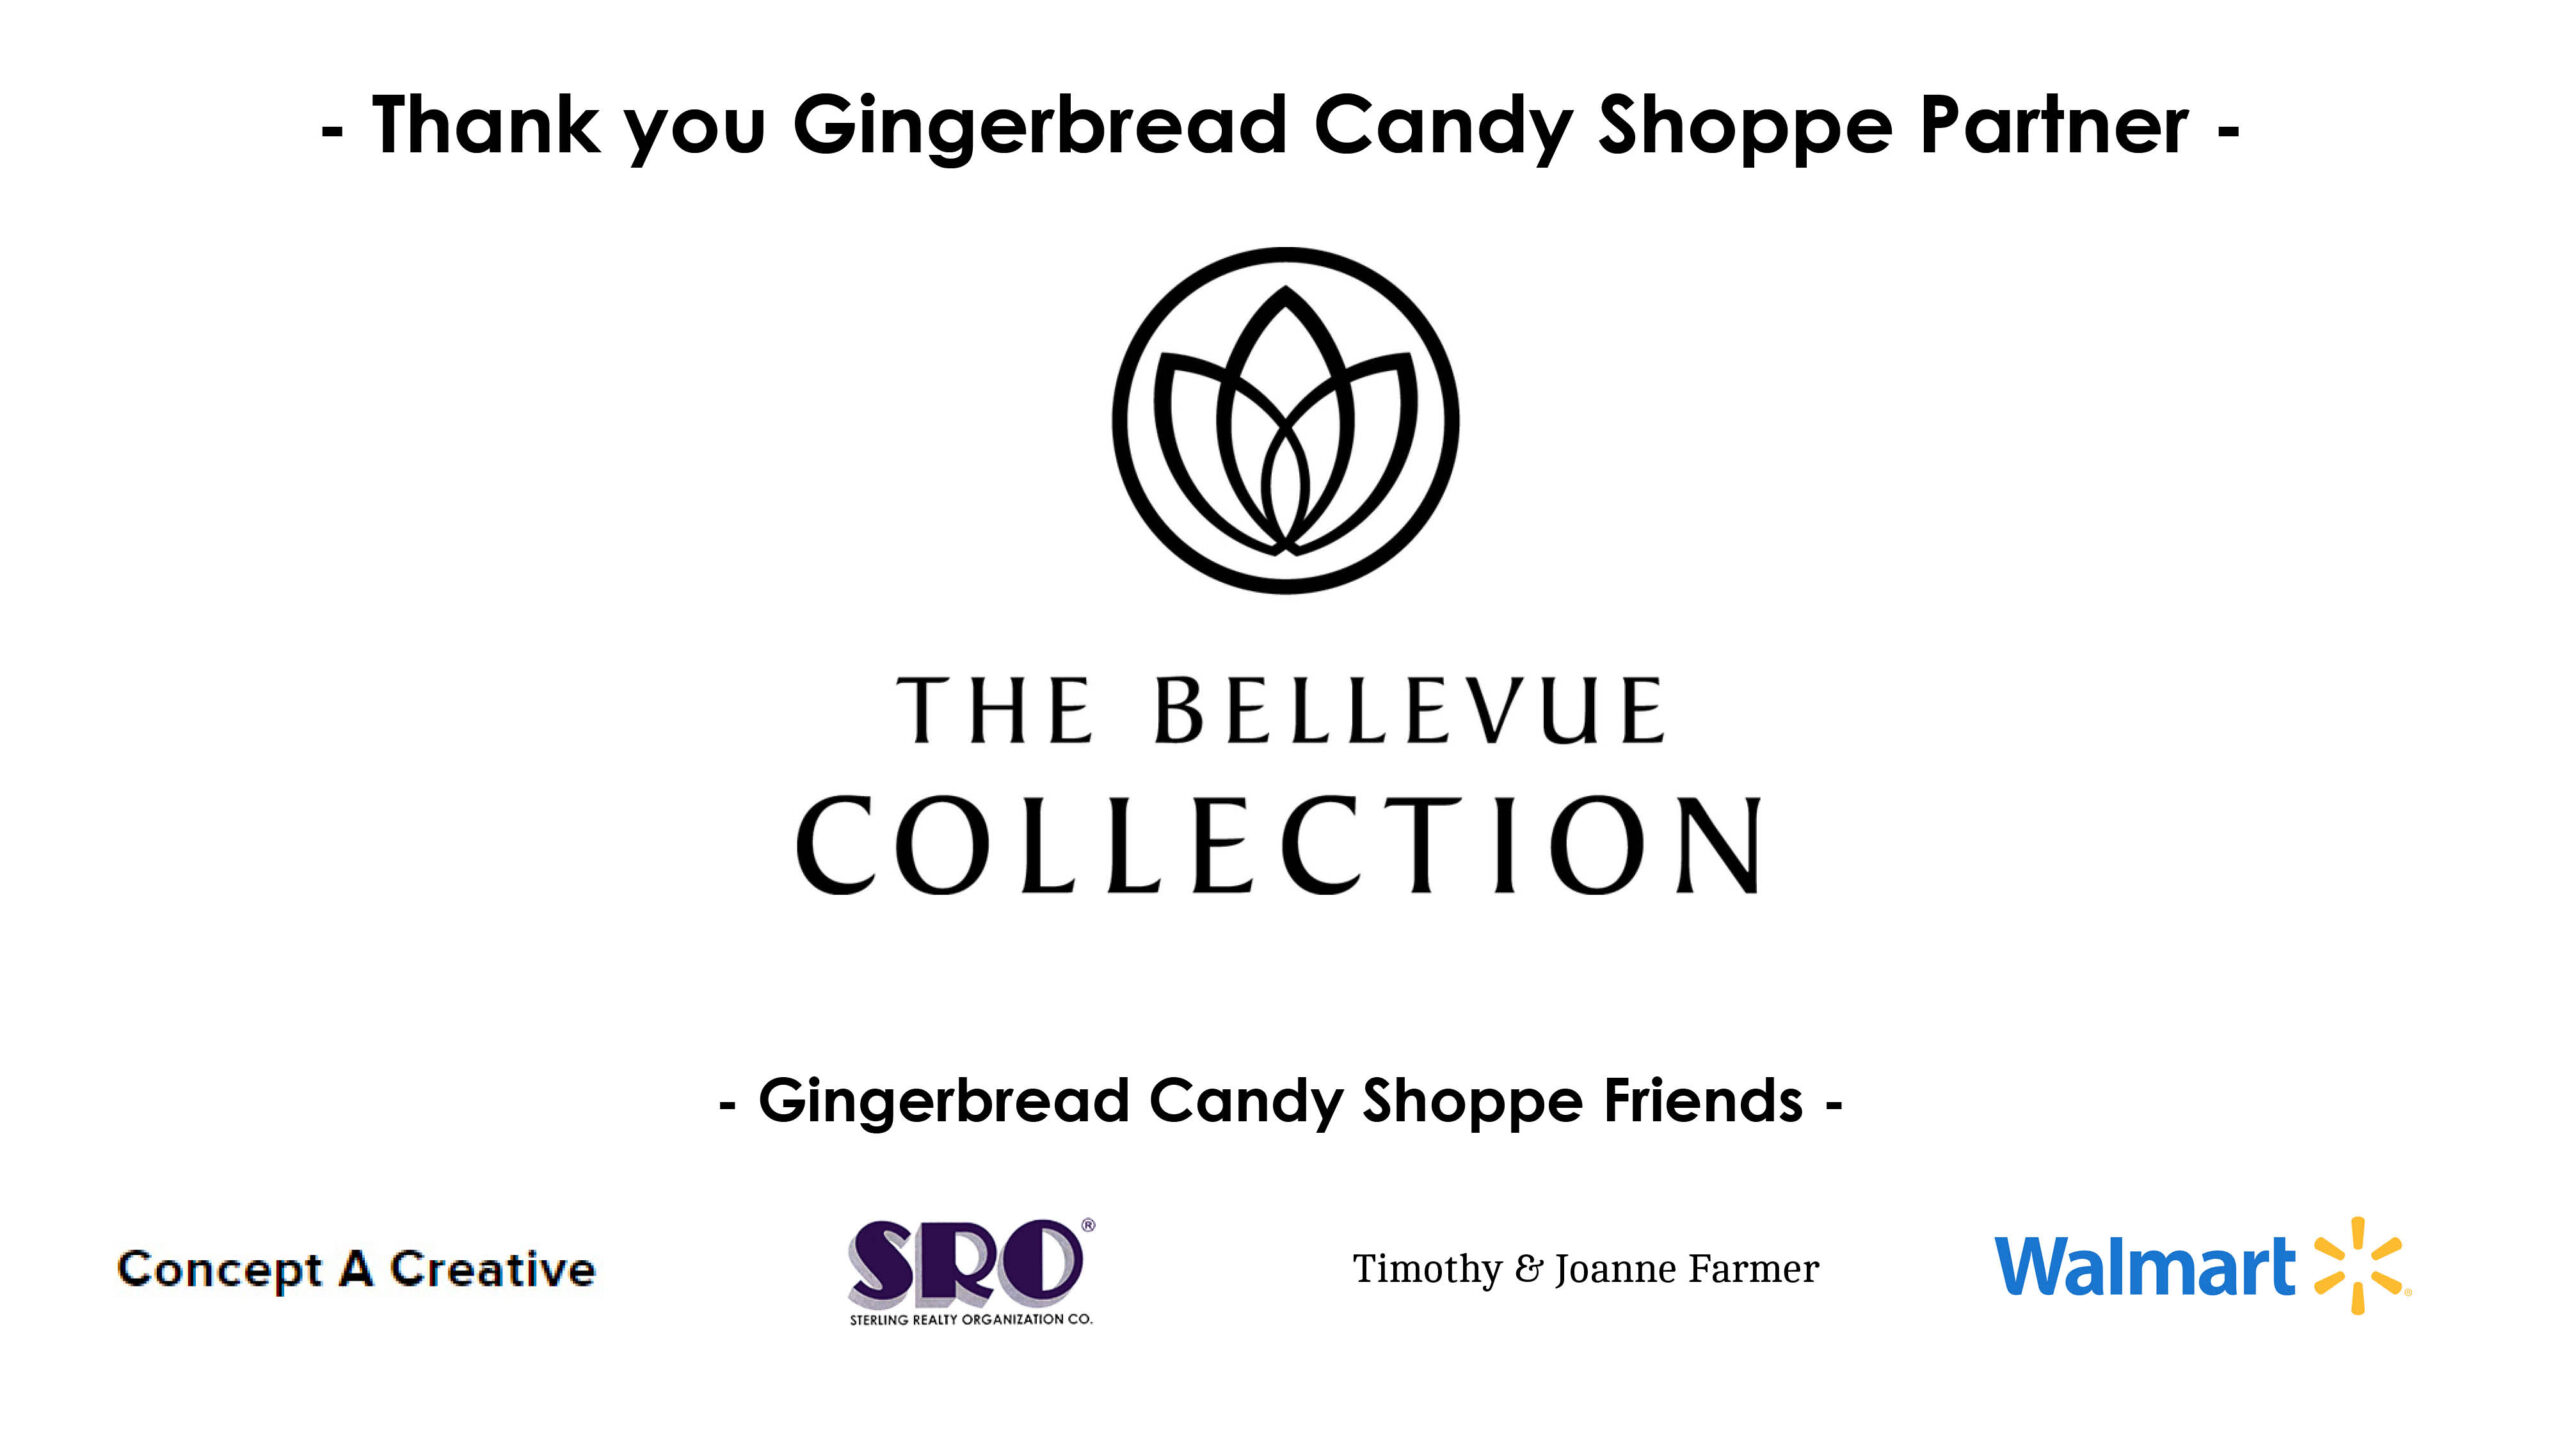 Gingerbread Candy Shoppe 9